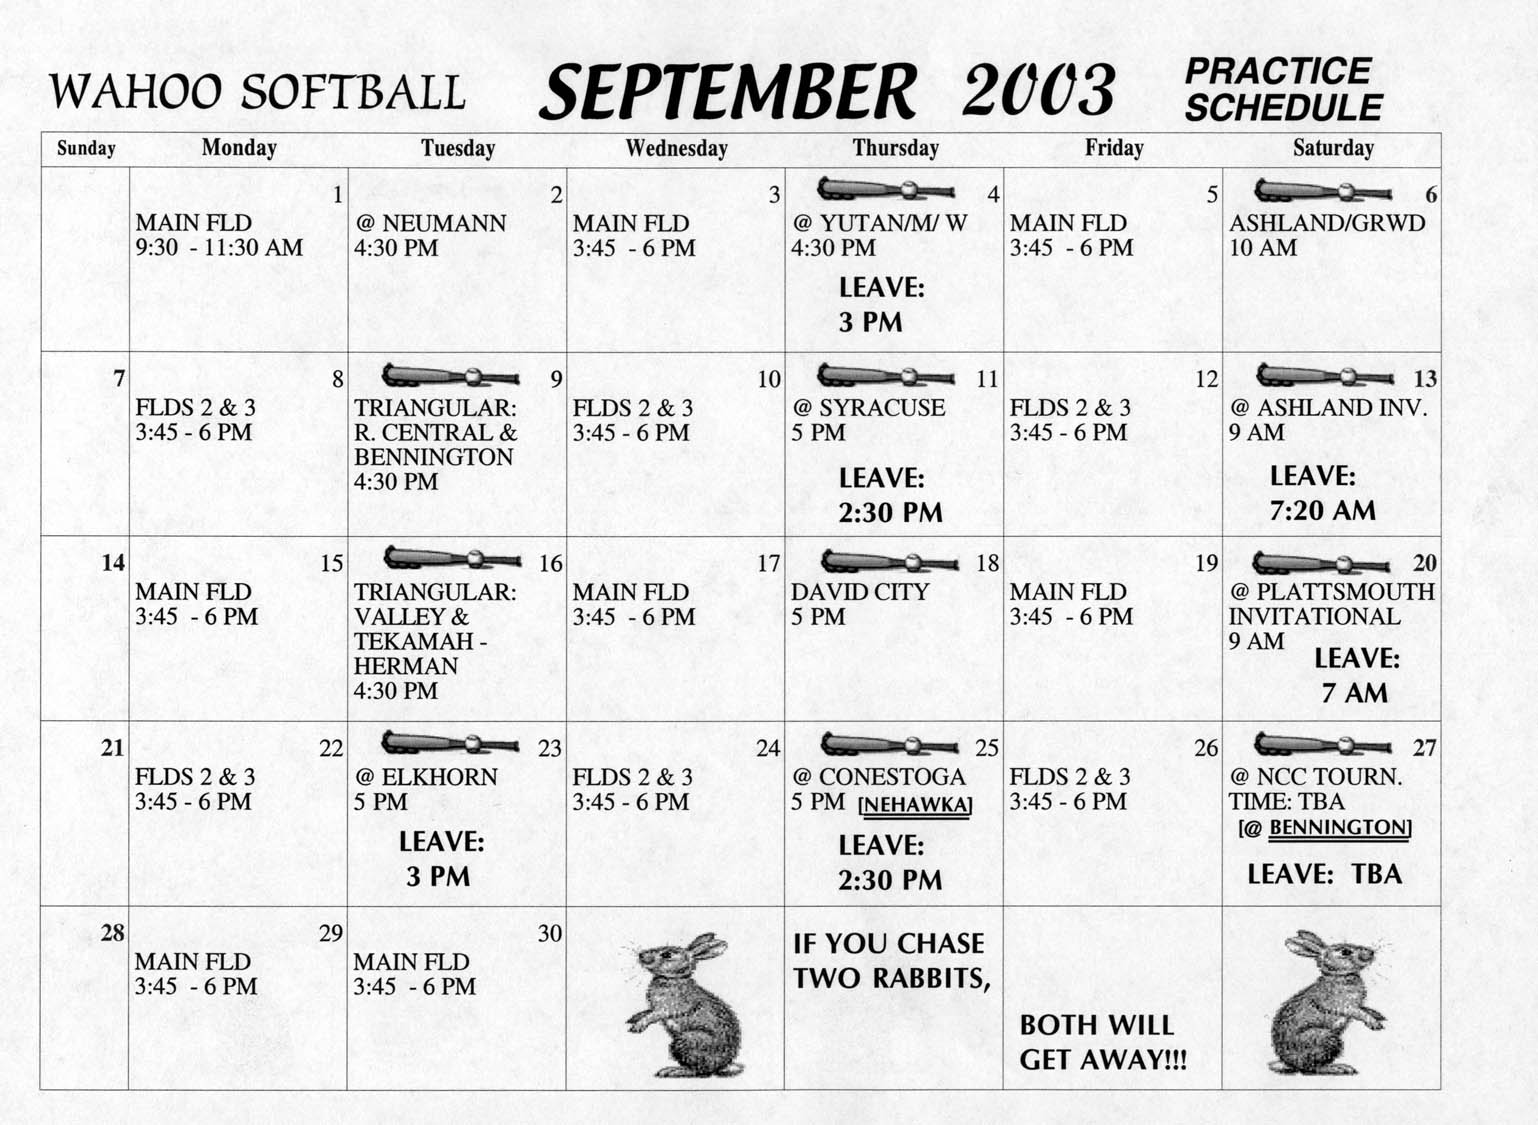 Wahoo Public Schools - Girls Softball Practice and Game Schedule